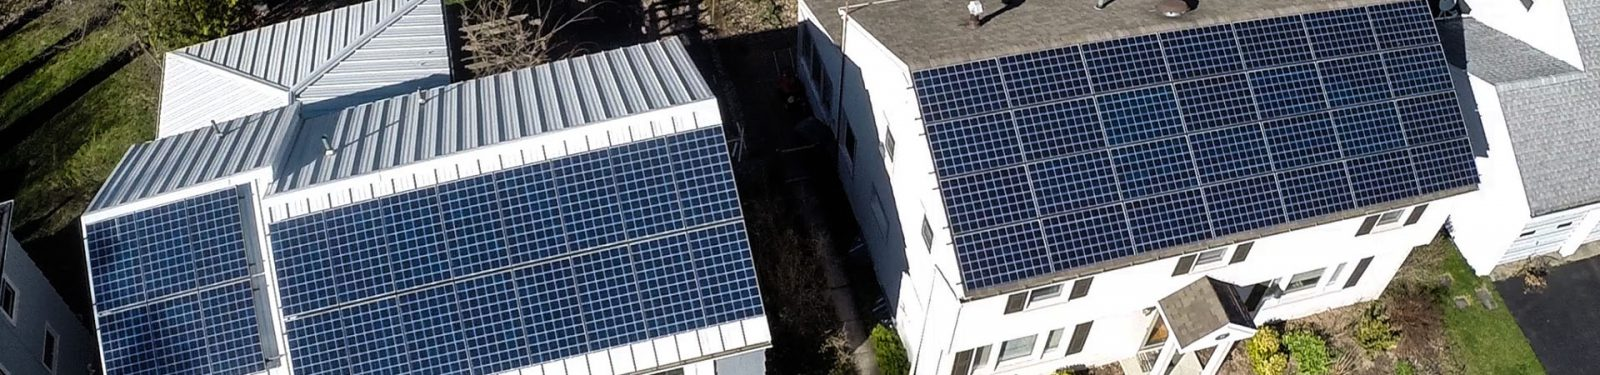 NY rooftop solar array slider